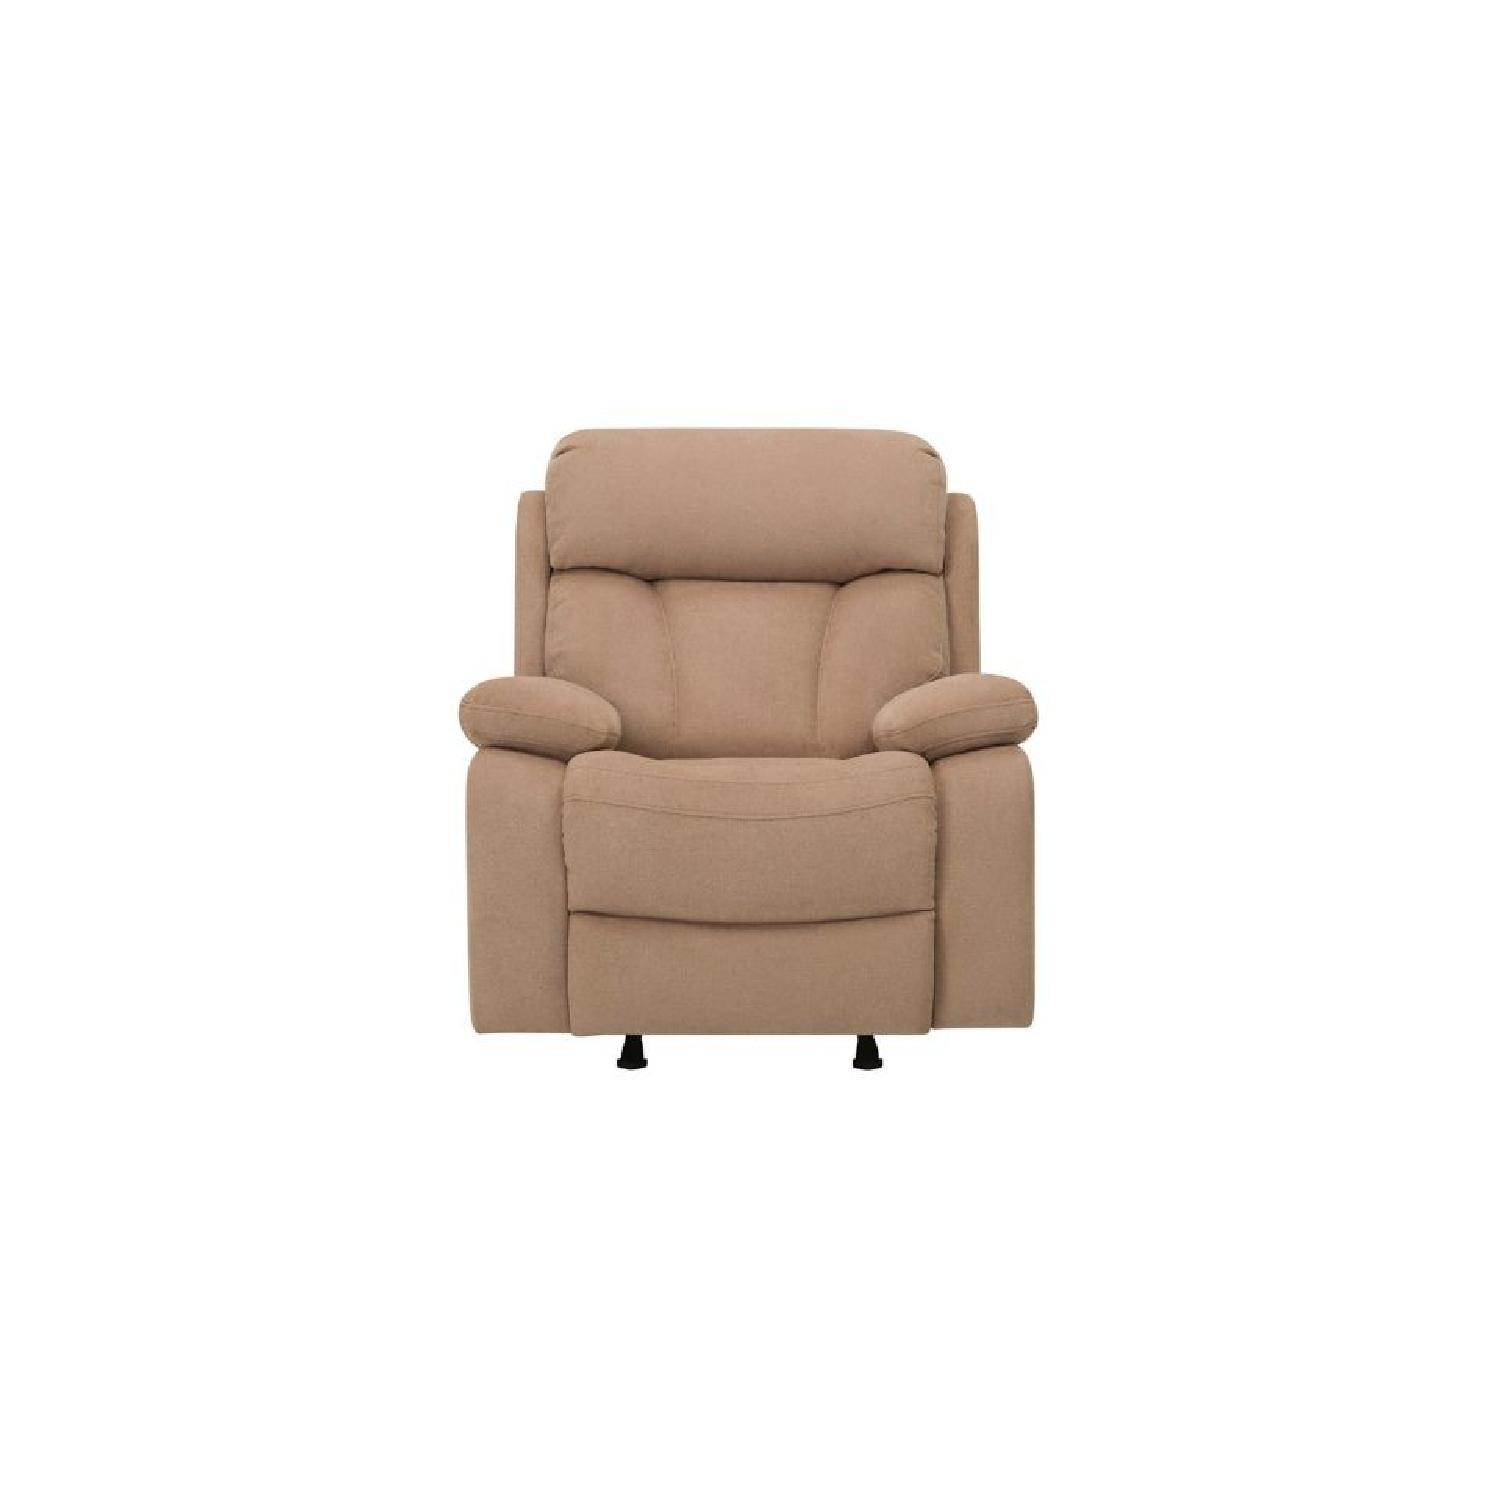 Raymour & Flanigan Connell Power Rocker Chair - image-3